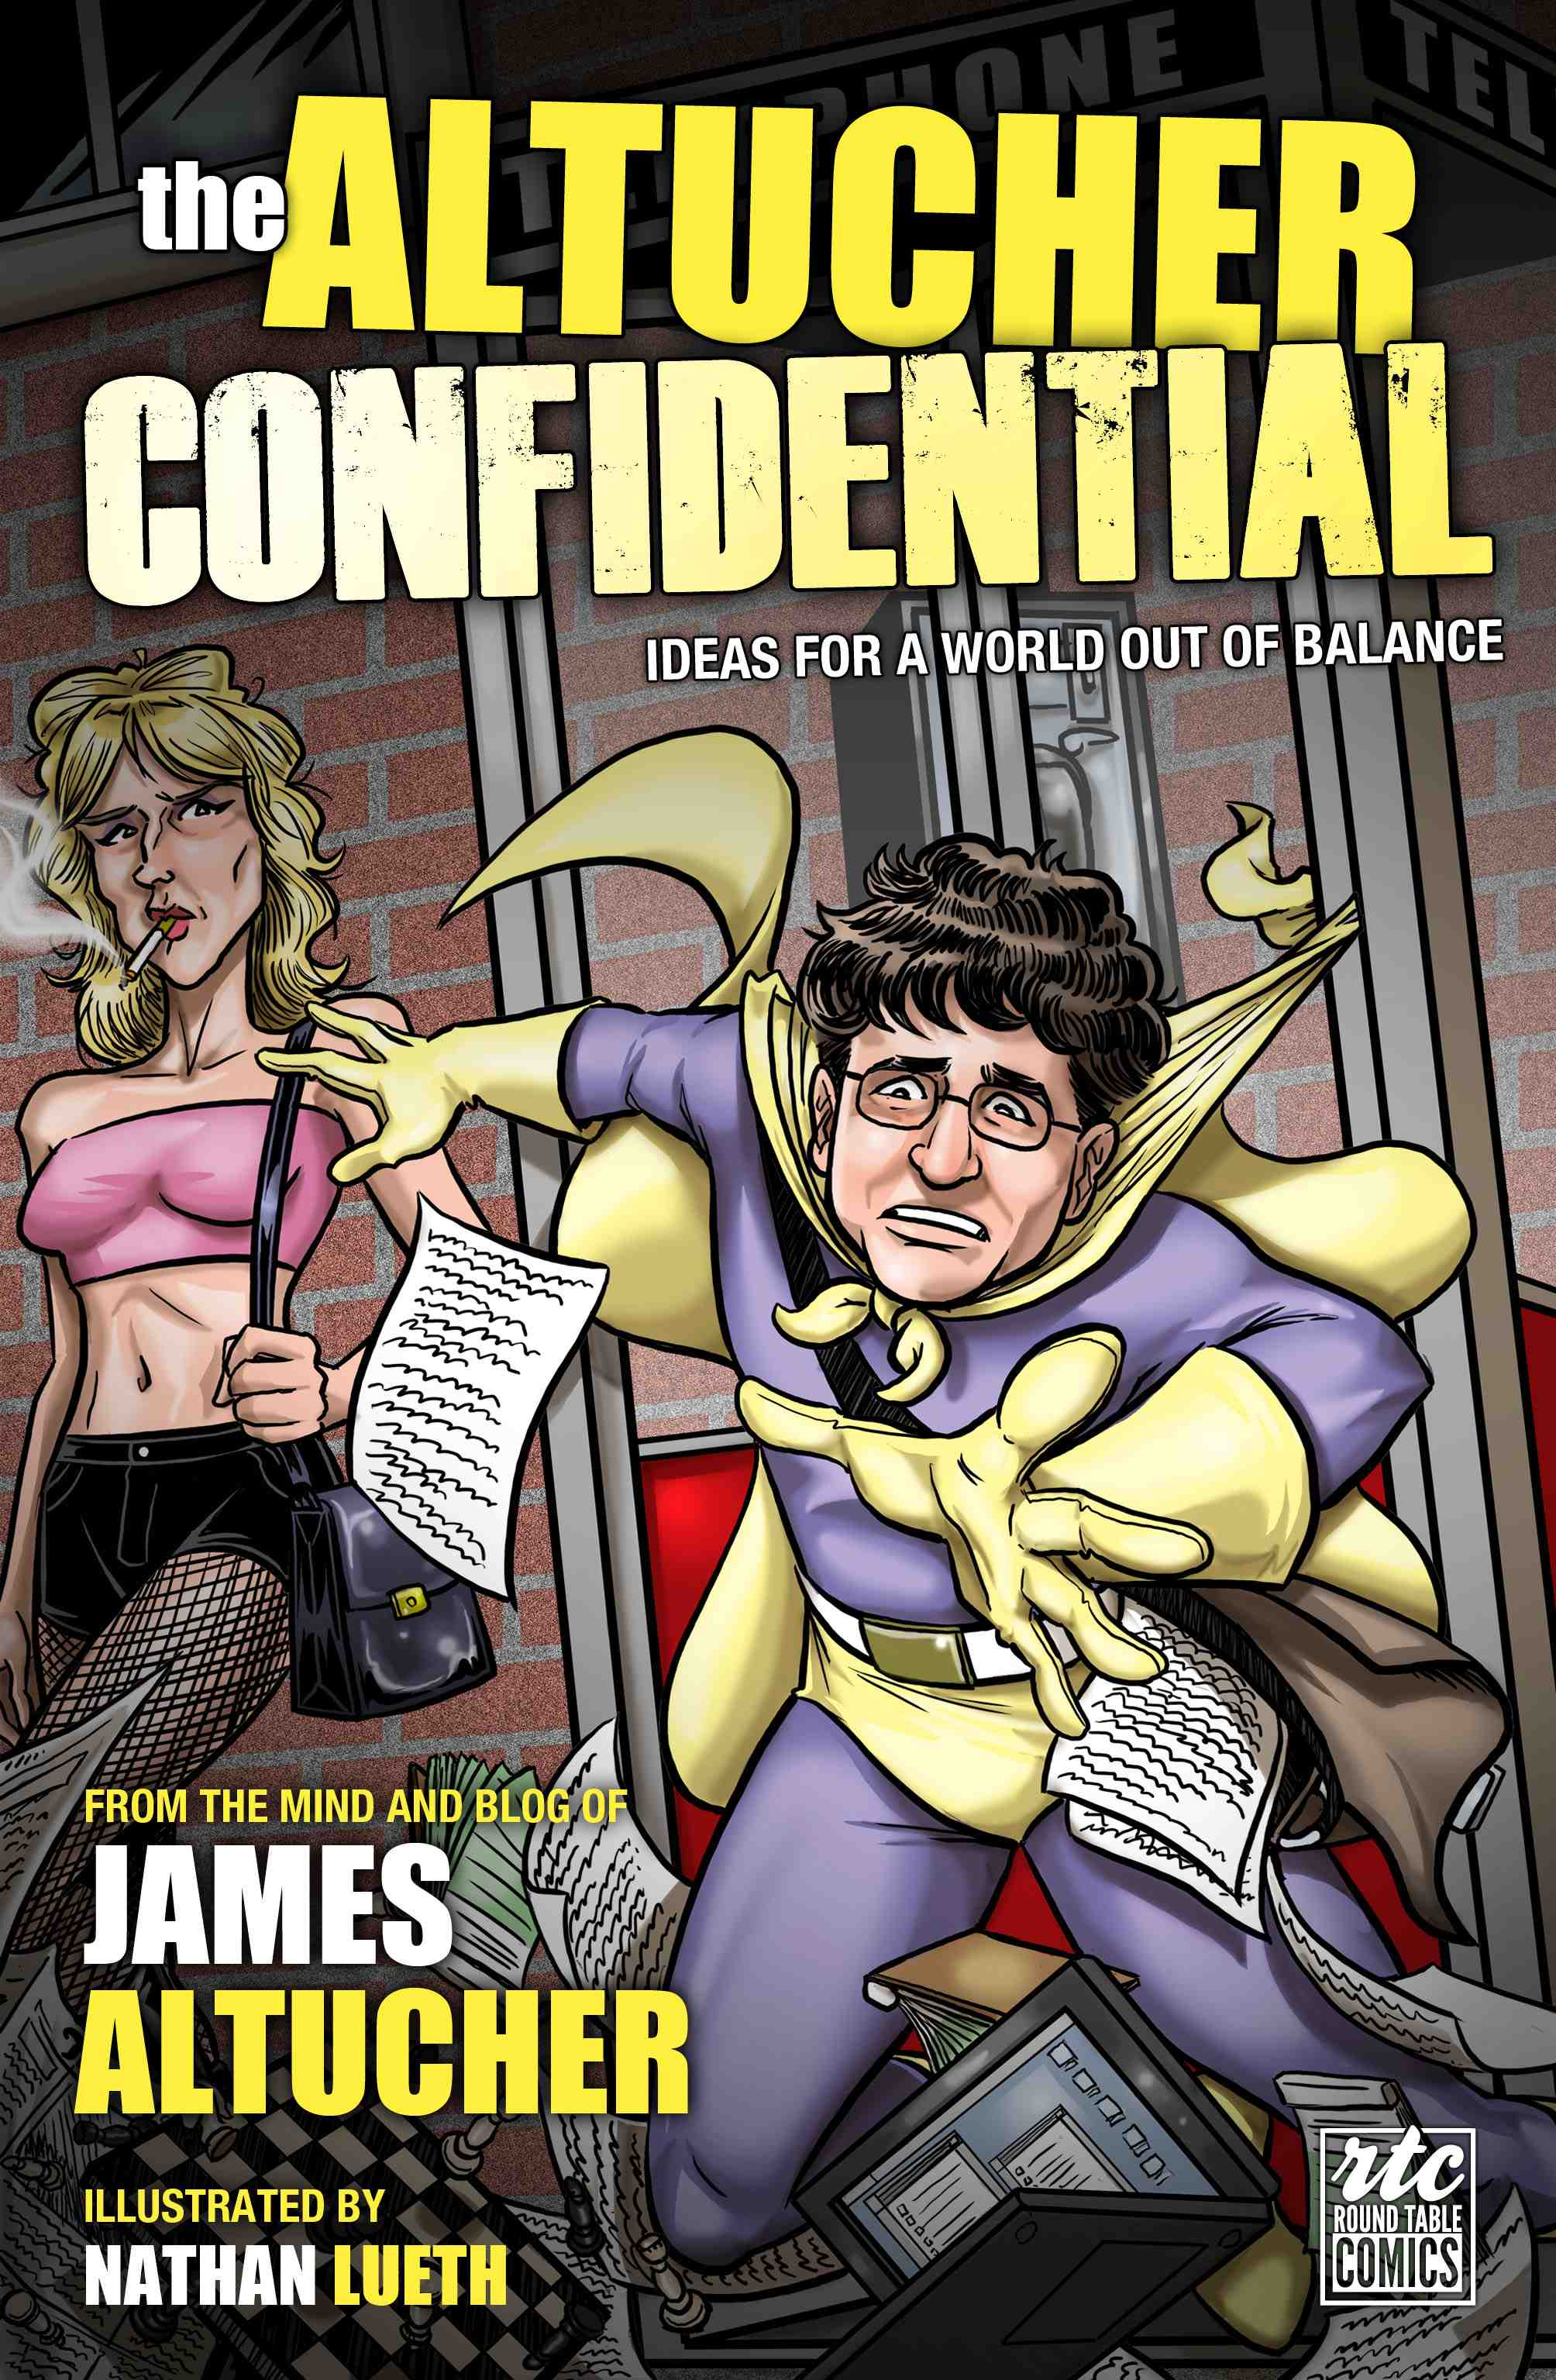 The Altucher Confidential: Ideas for a World Out of Balance